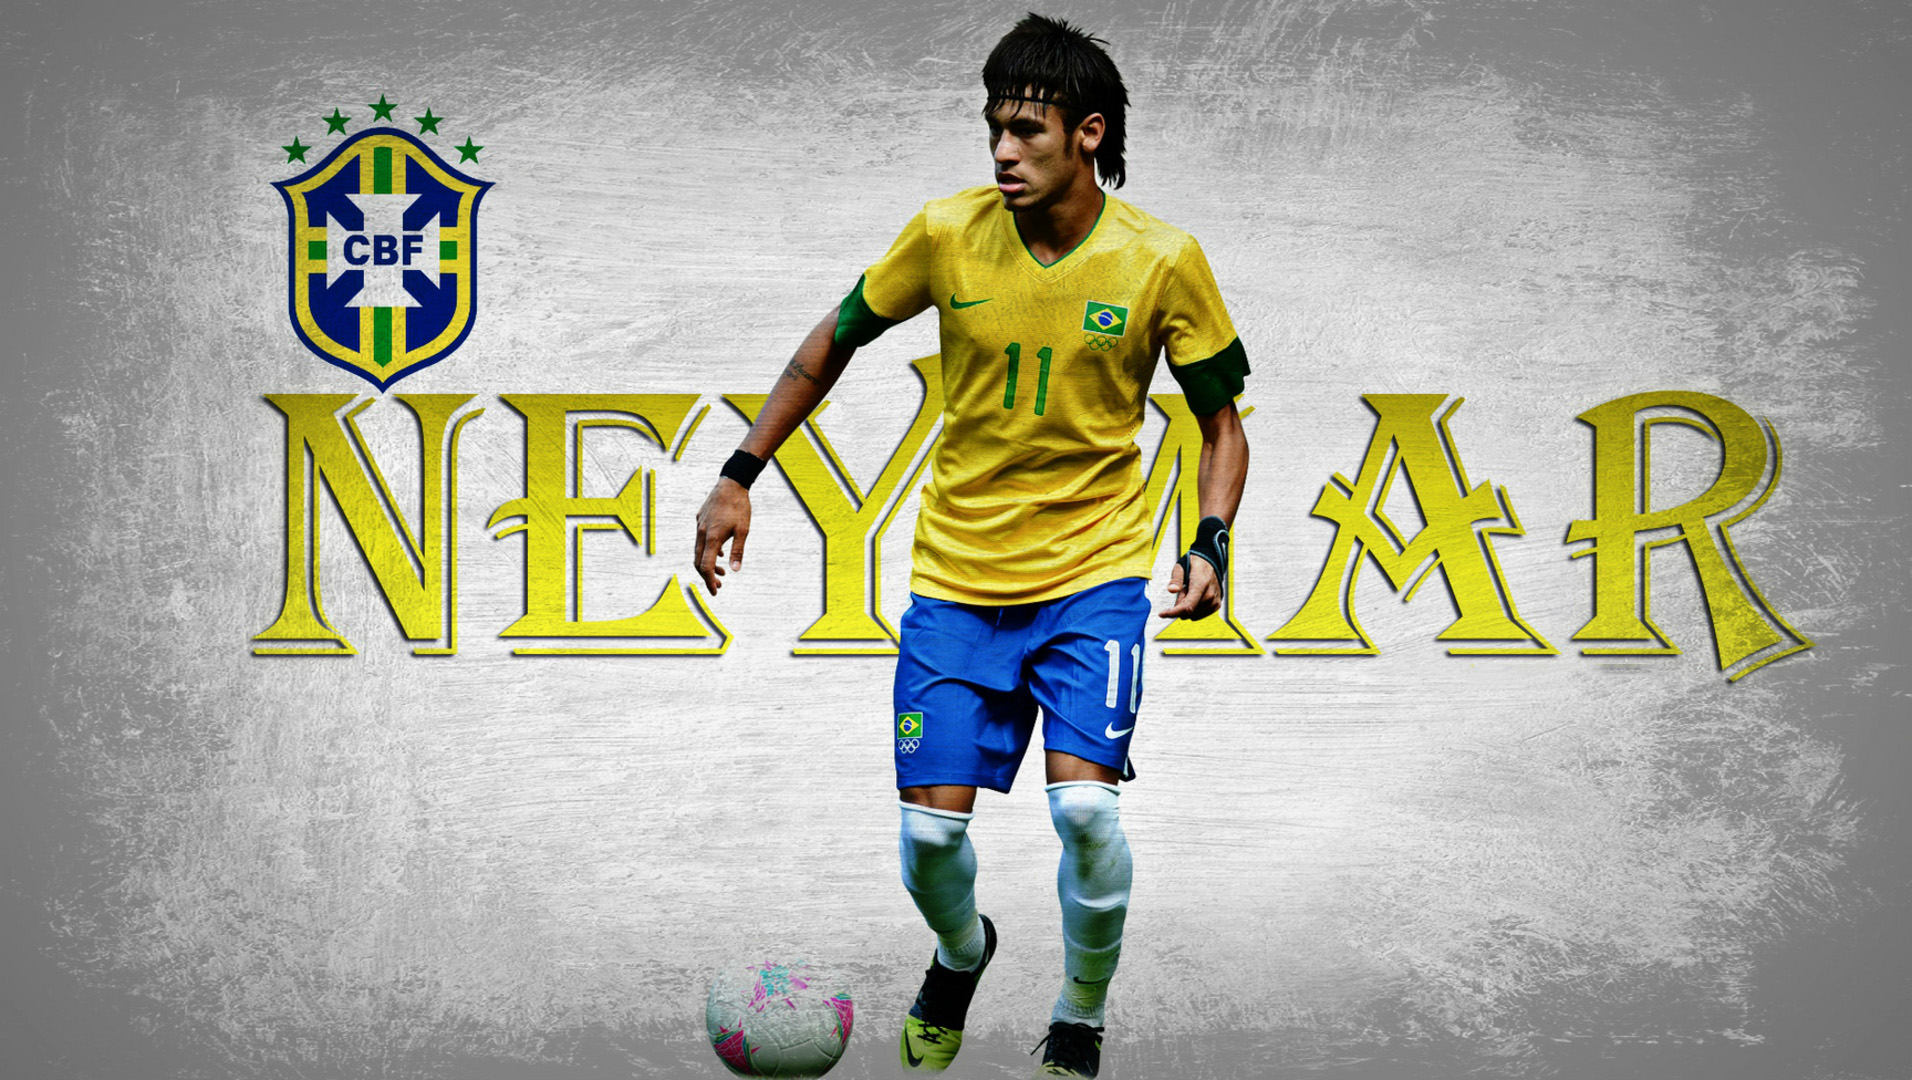 Celebrate Brazil's Bright Soccer Future With Neymar Wallpapers